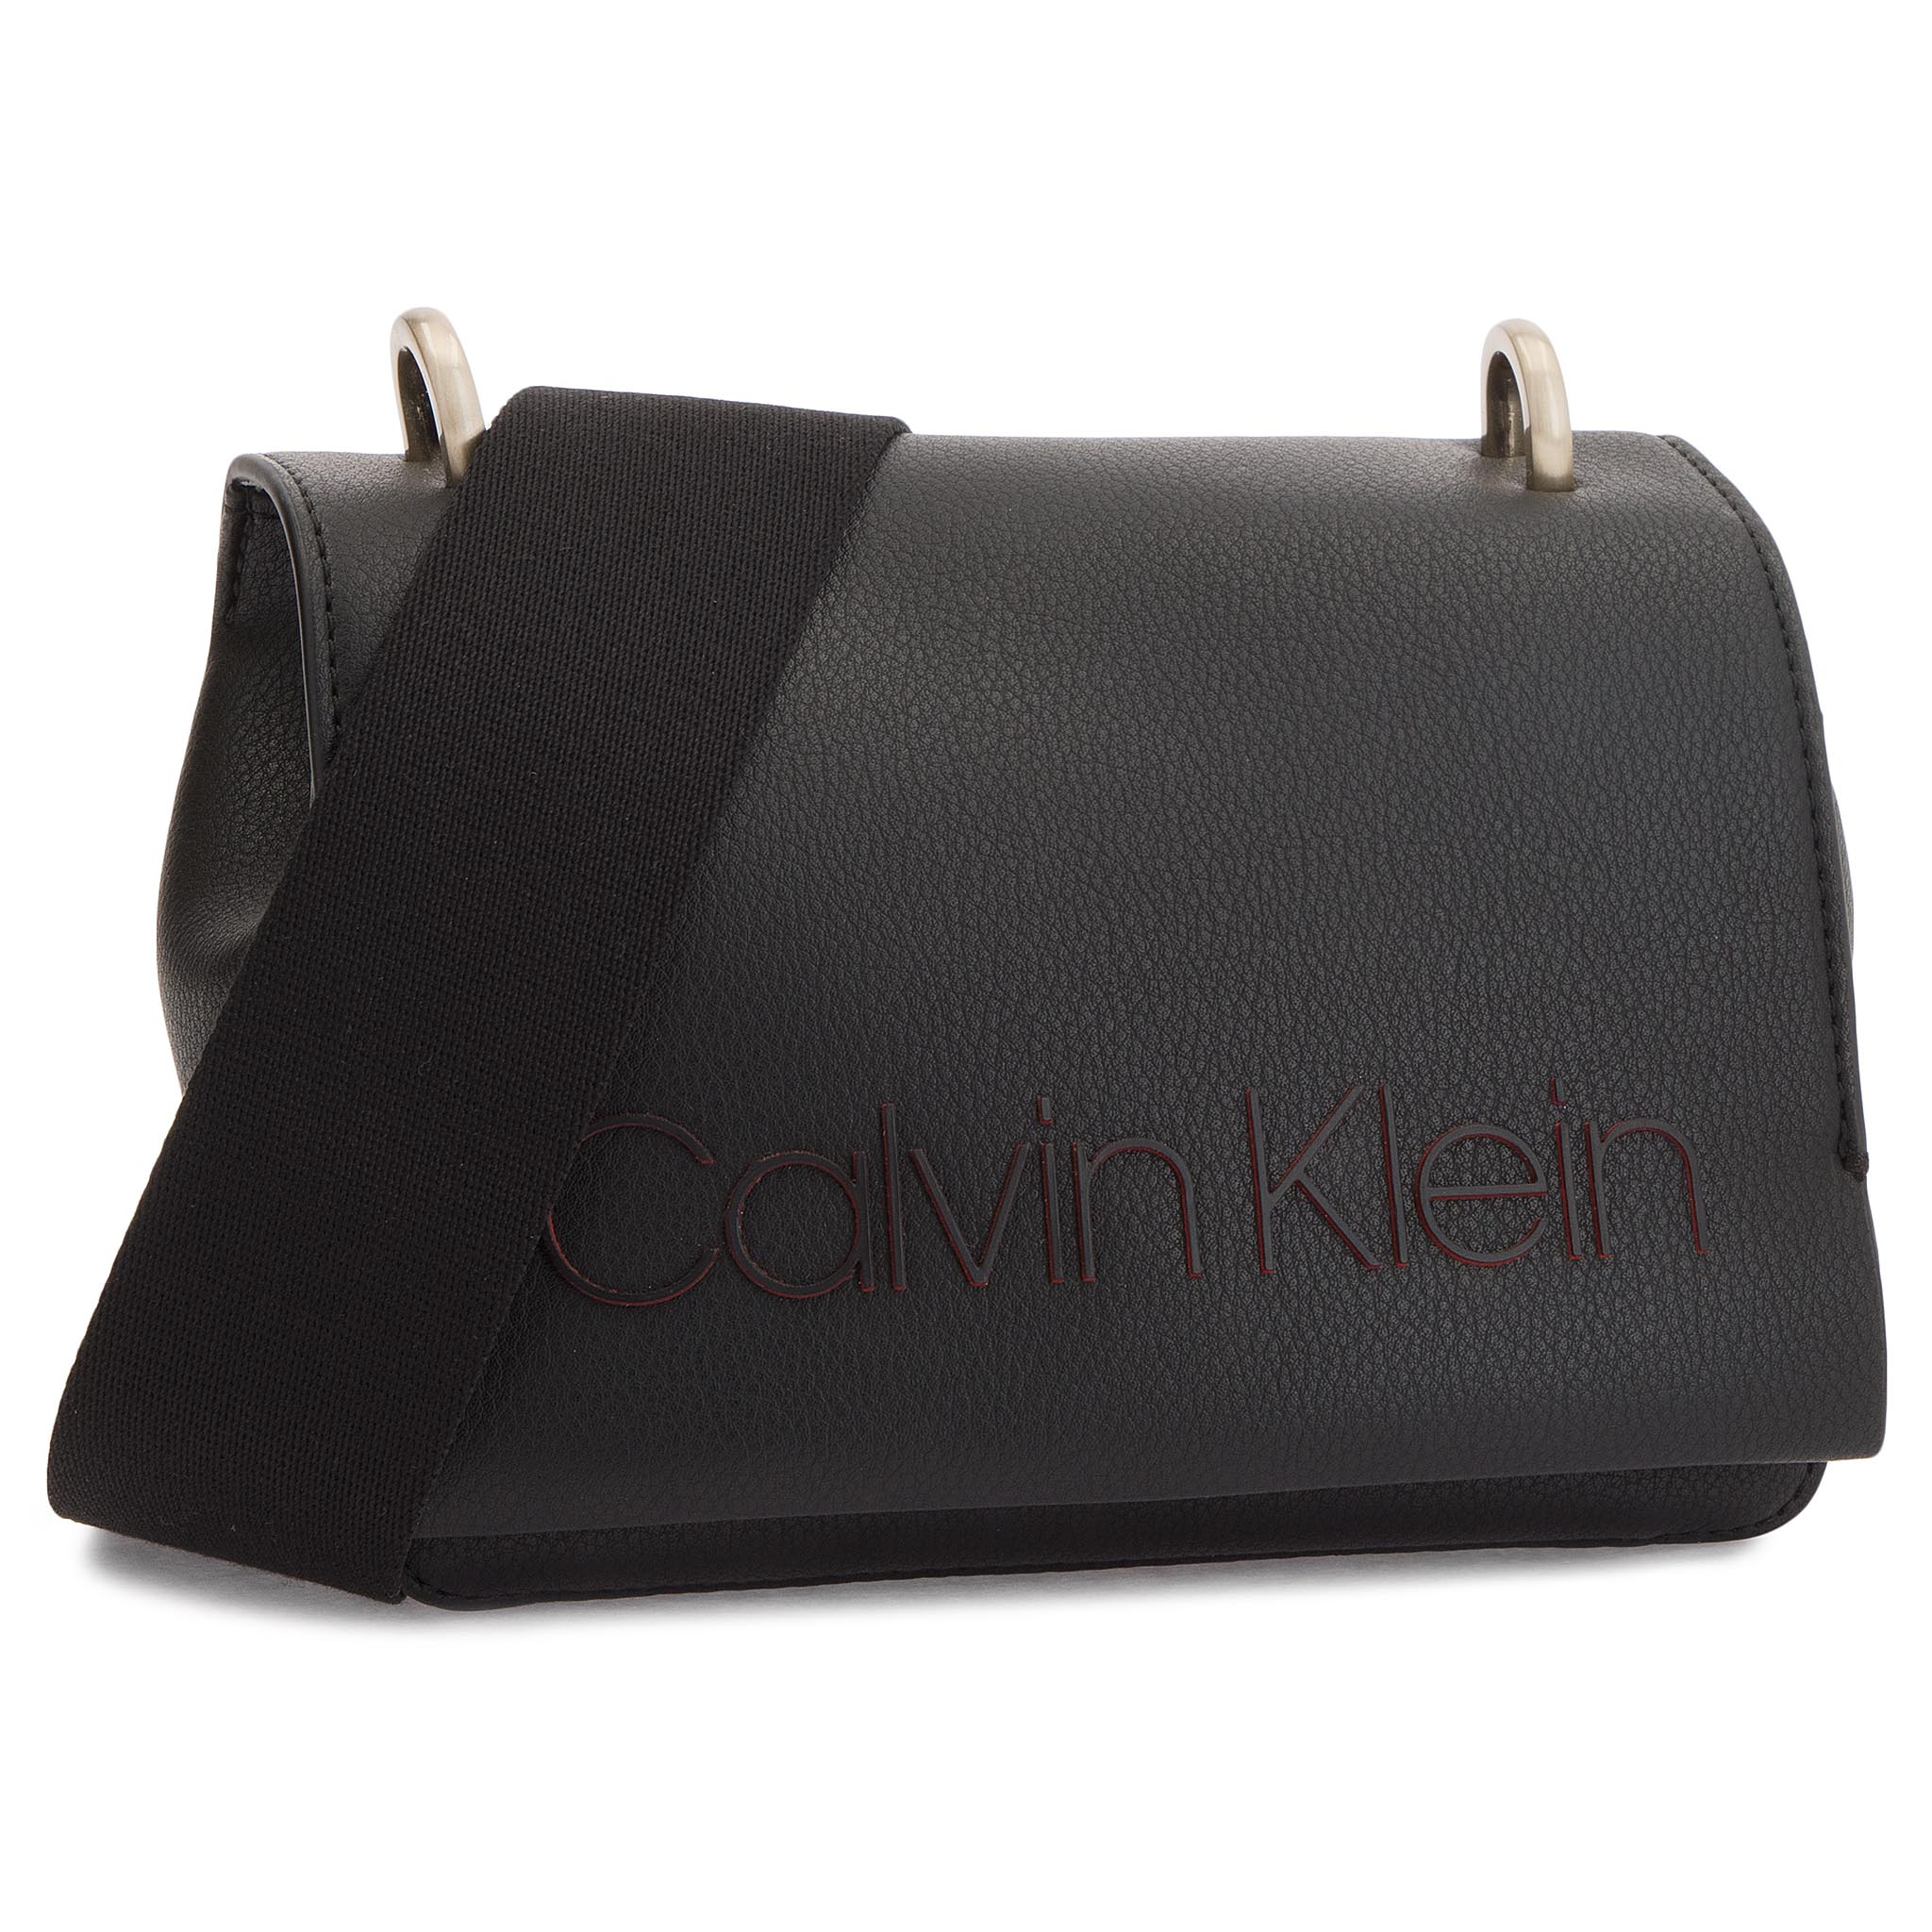 Geantă CALVIN KLEIN - Pop Small Crossbody K60K604594 001